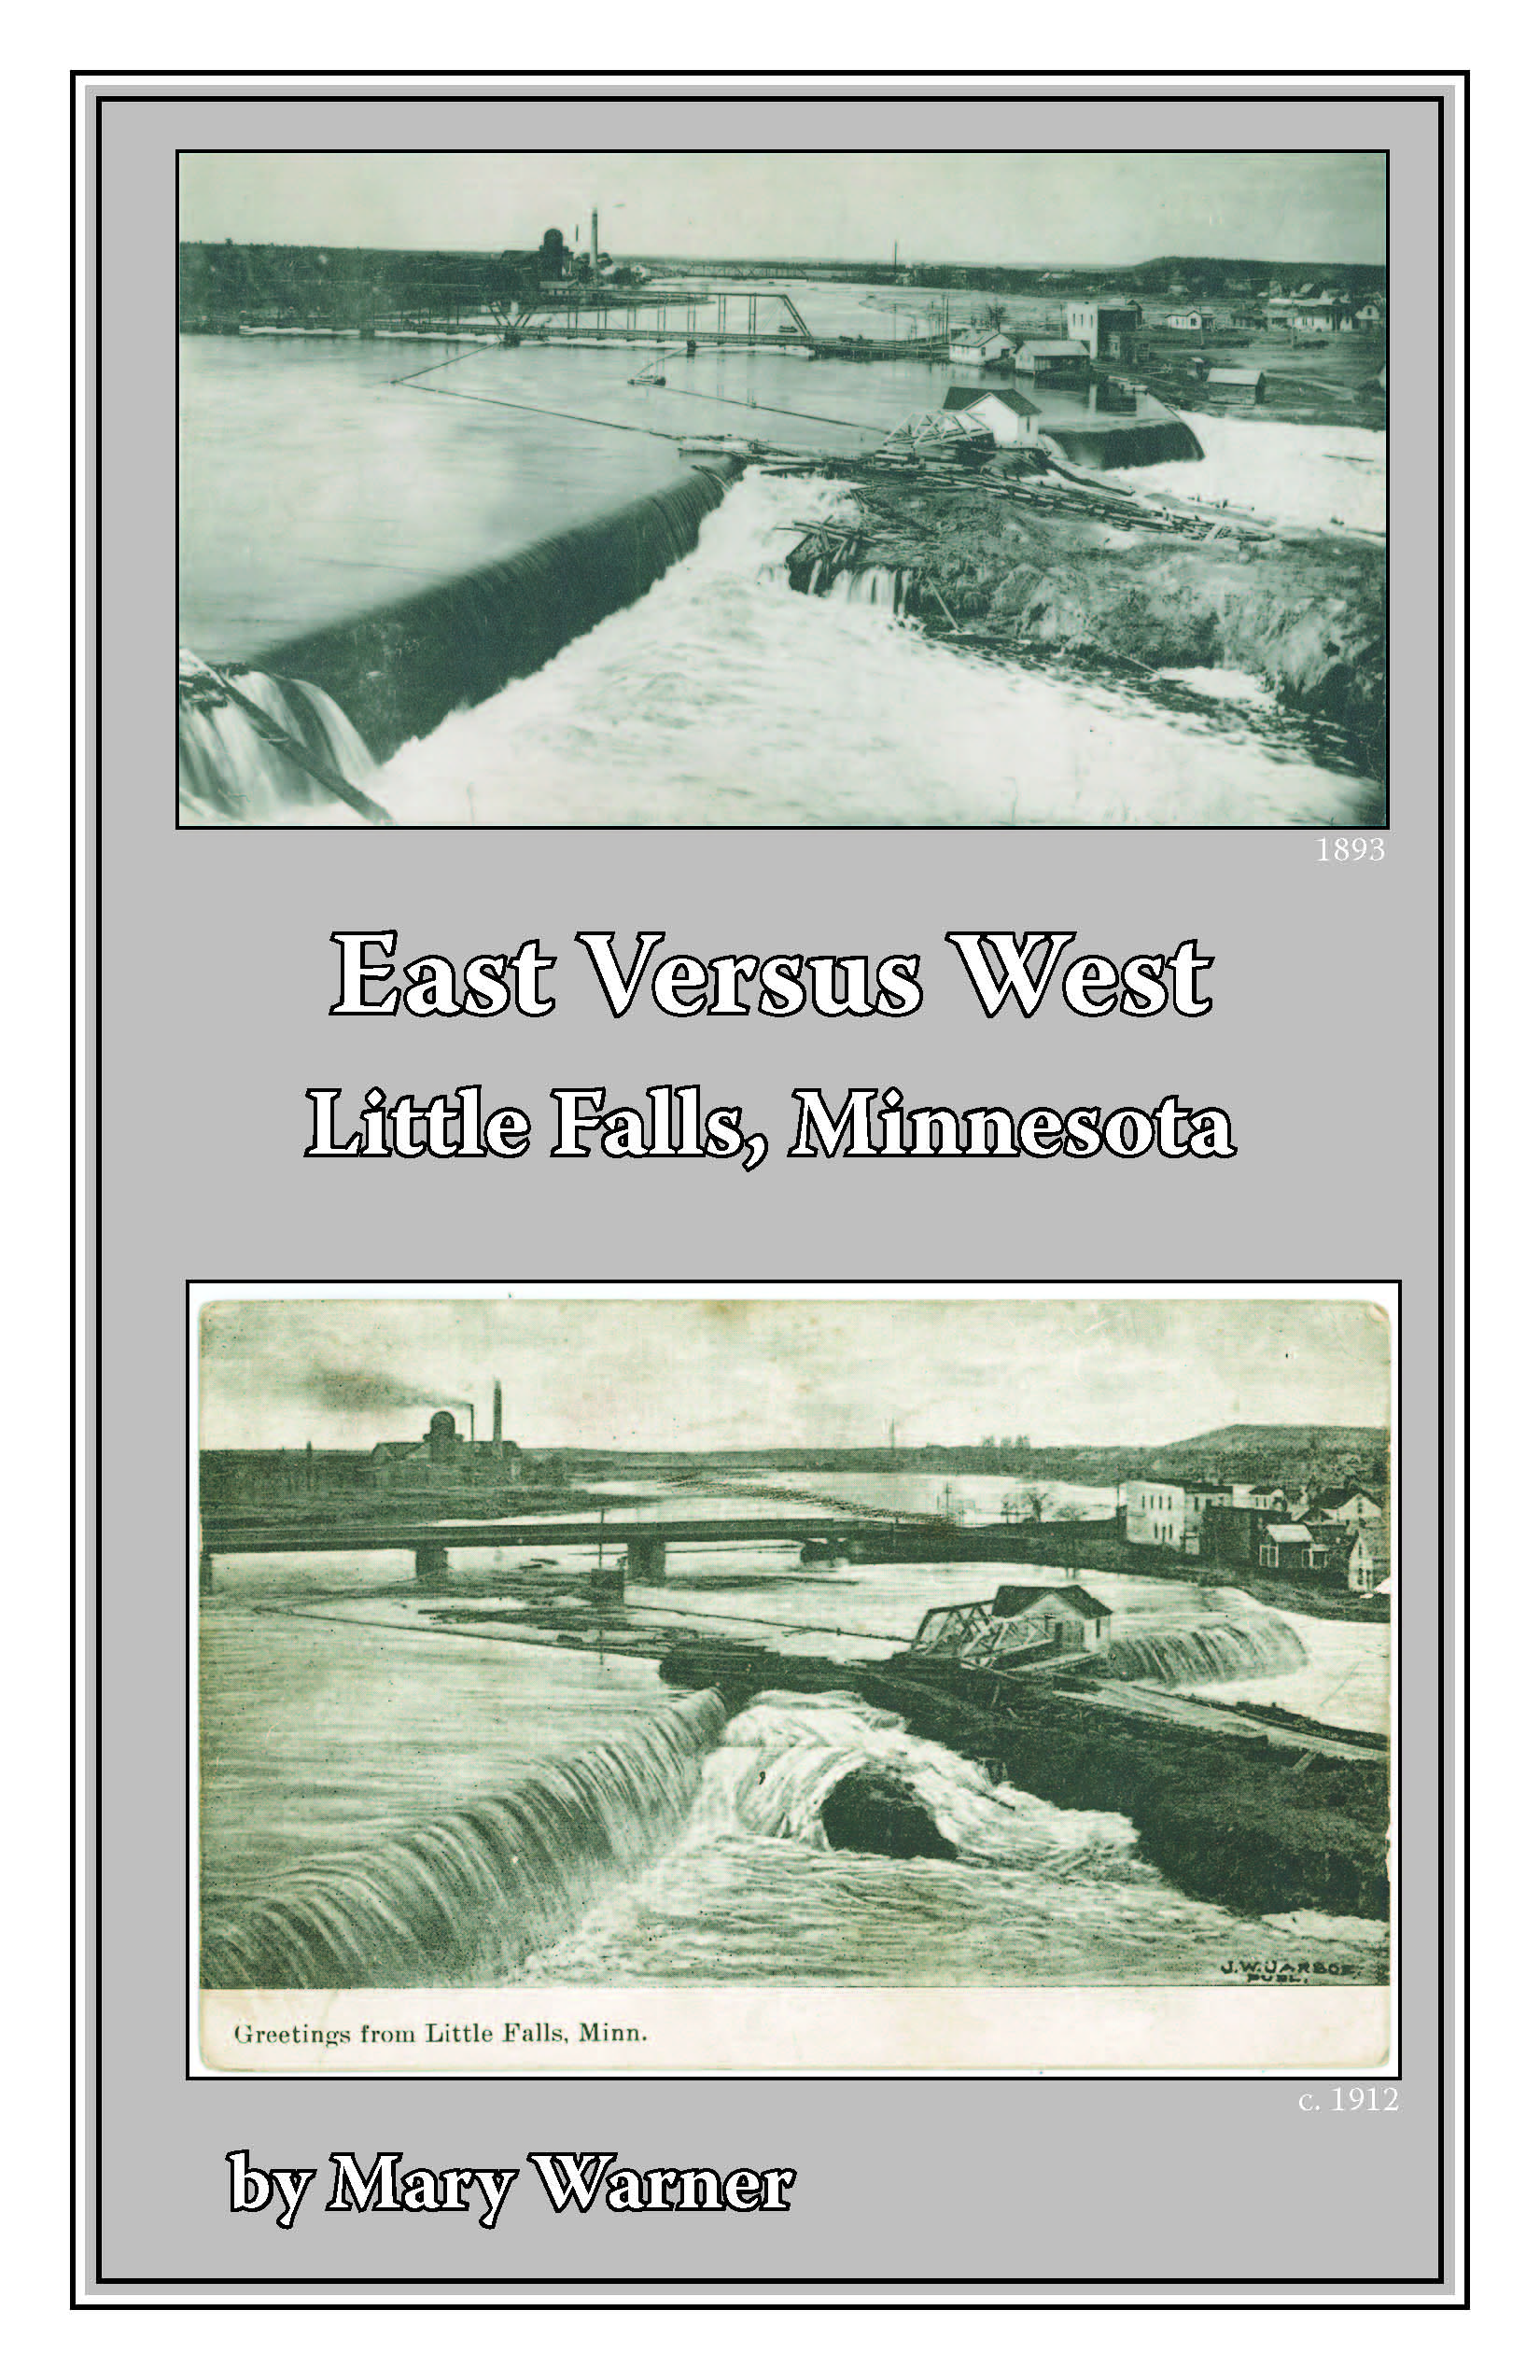 East Versus West, Little Falls, Minnesota